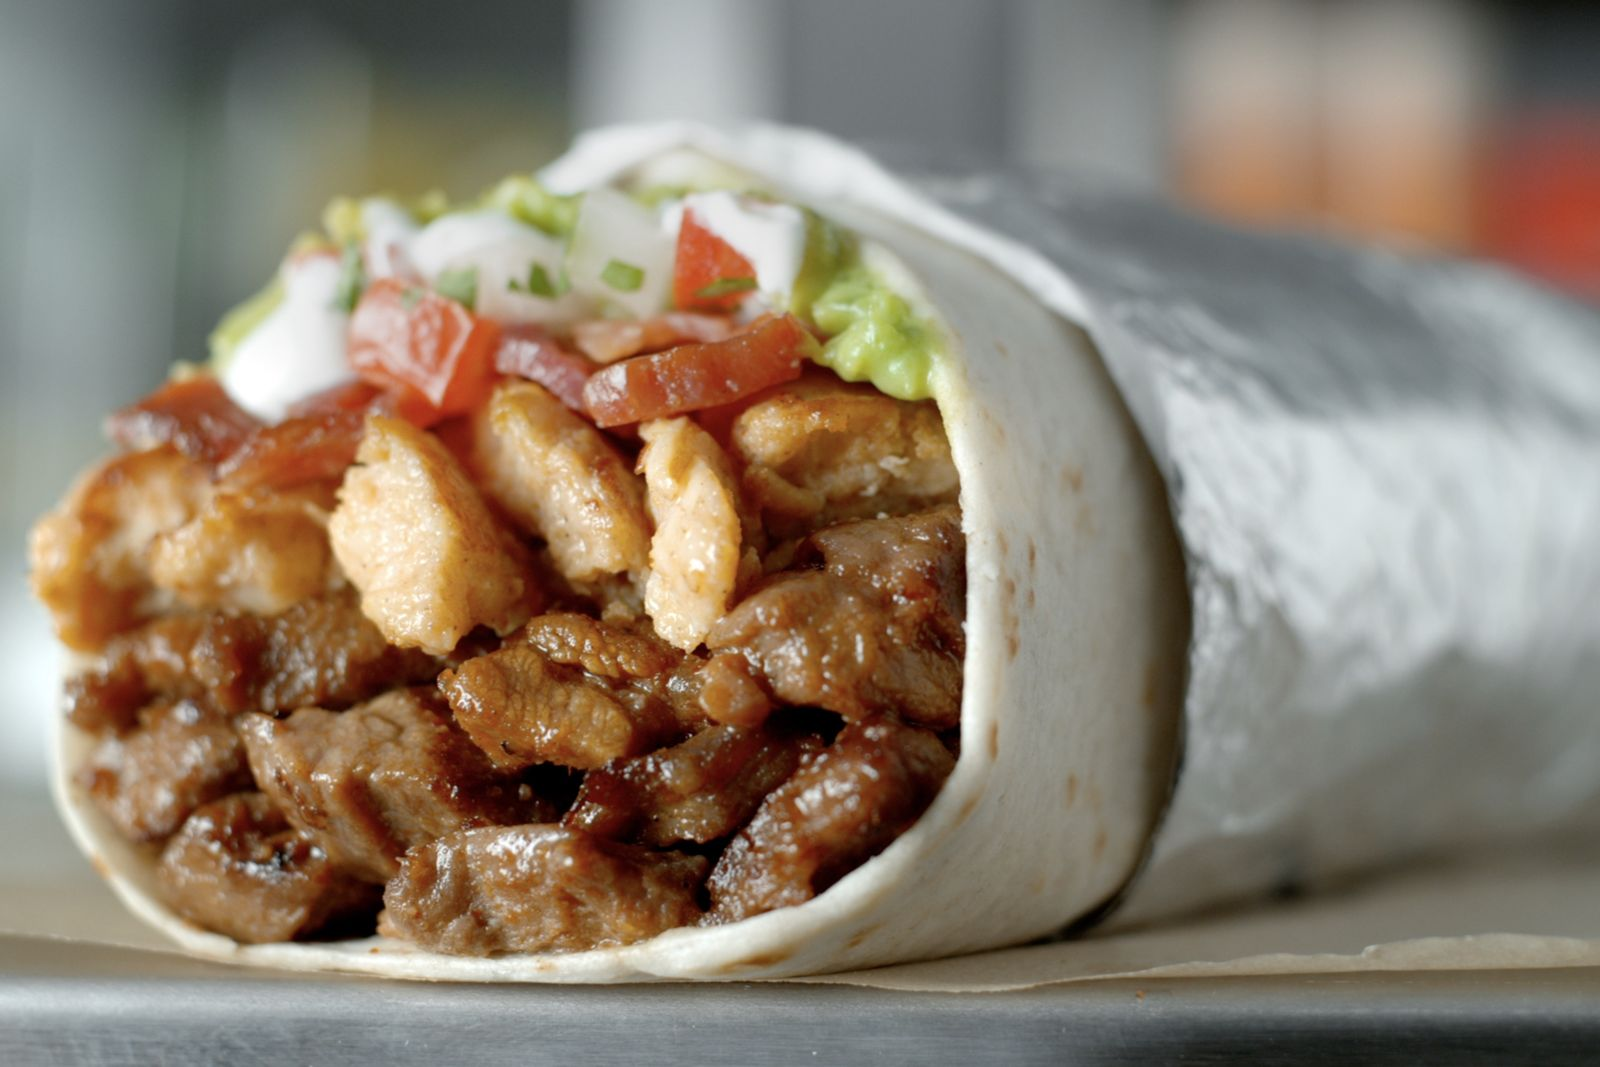 Del Taco Continues Strategic Growth in Atlanta with Three New Stores Opening by End of Year